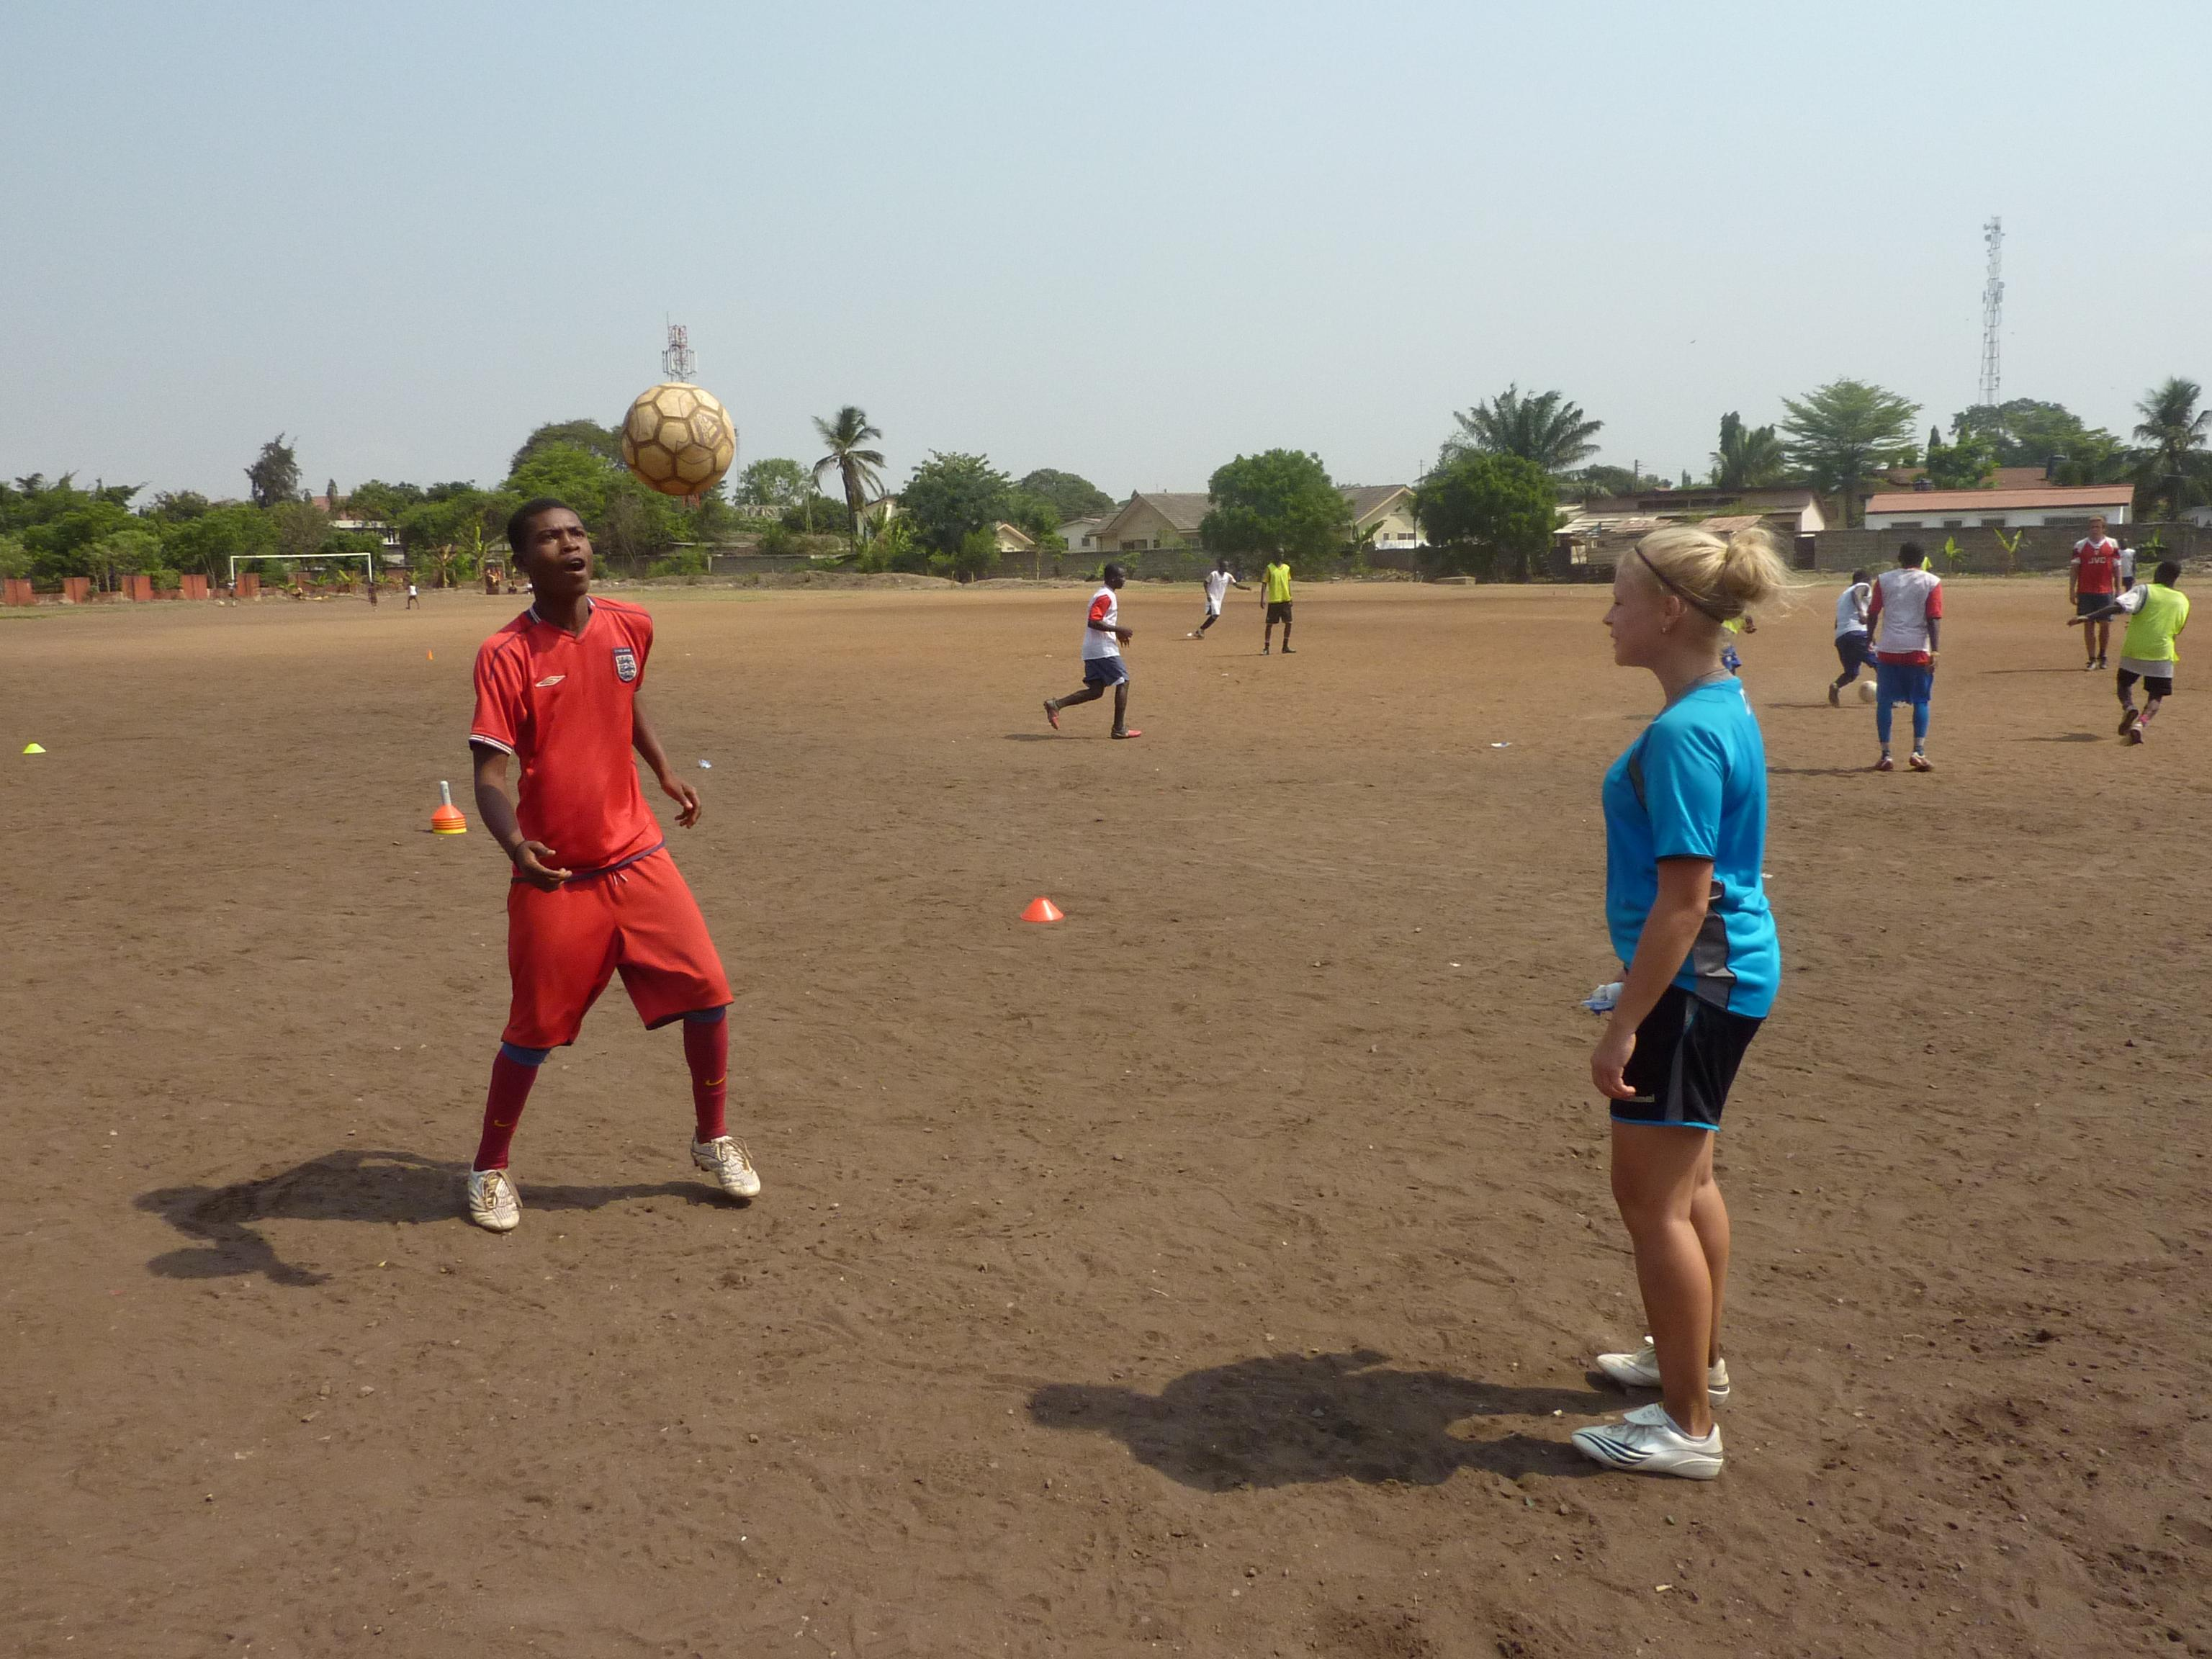 A woman volunteers as a football coach in Ghana to share her skills with others